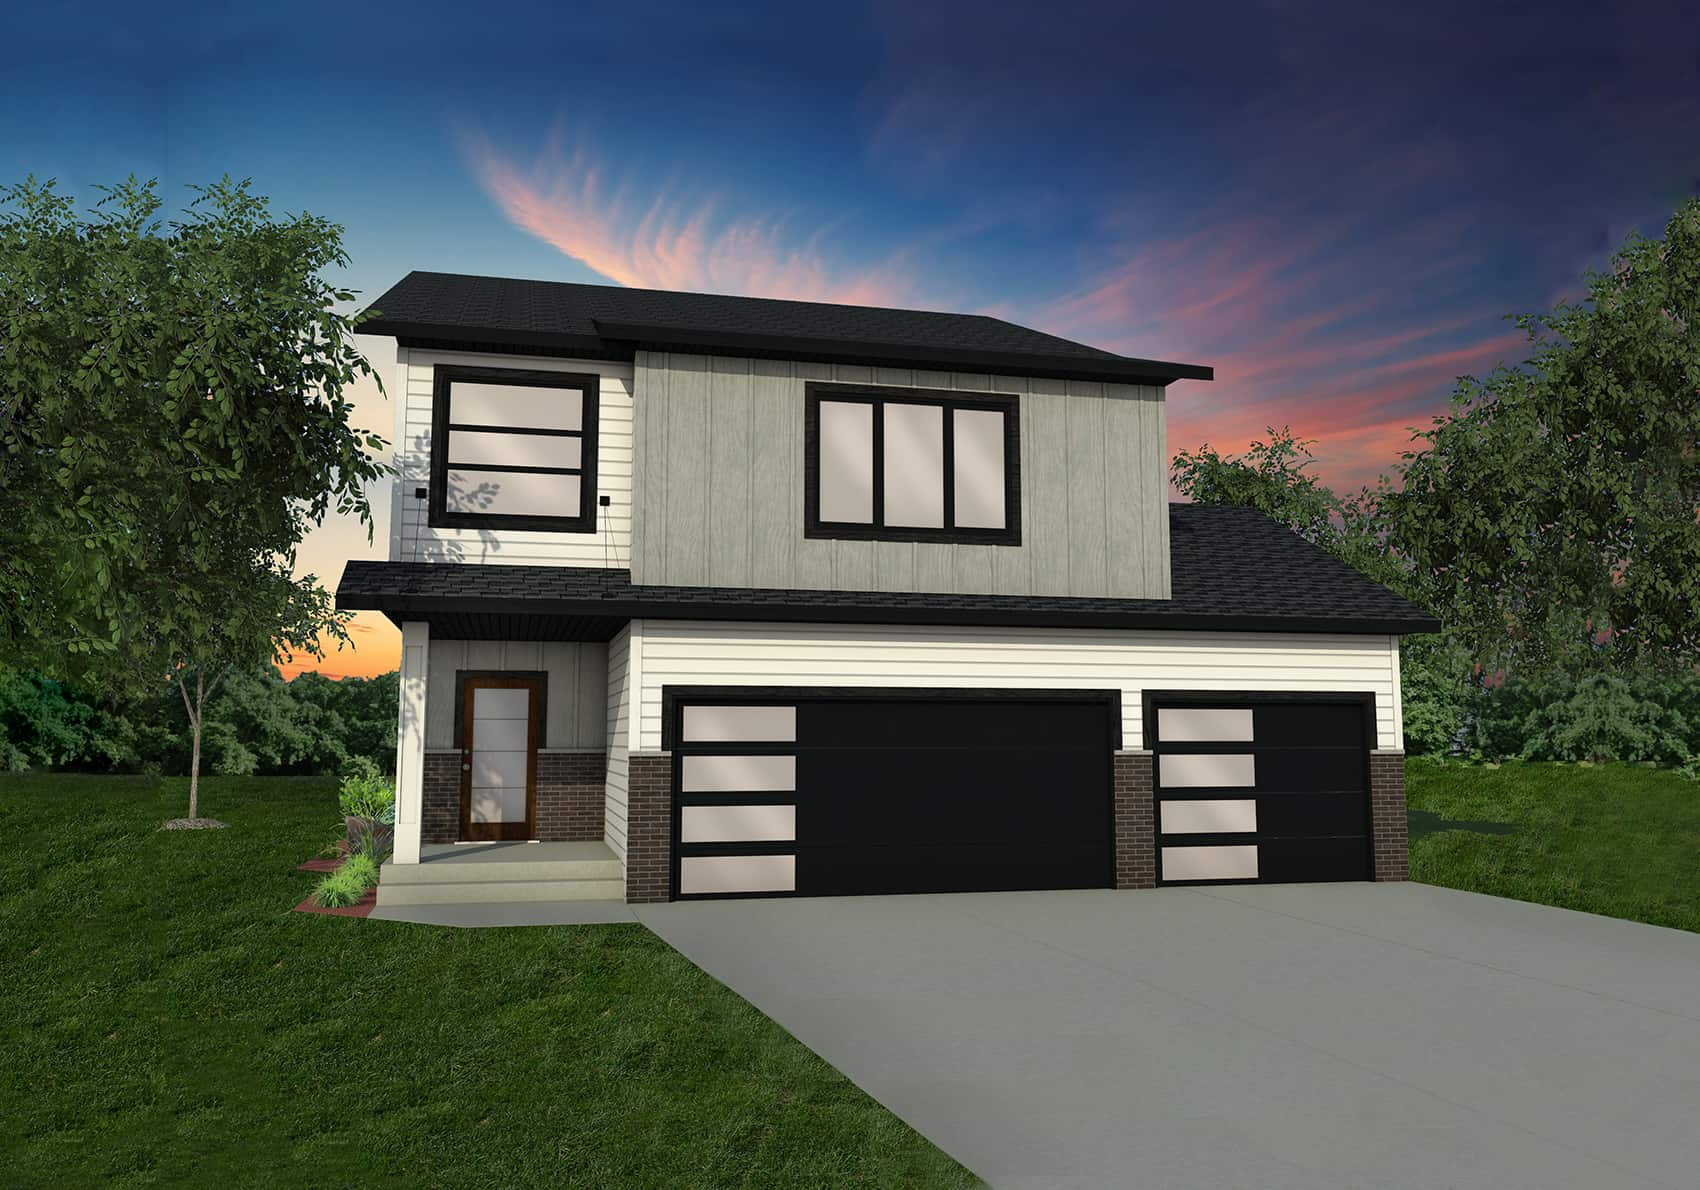 Introducing our new exterior home plan options thomsen homes for New home options